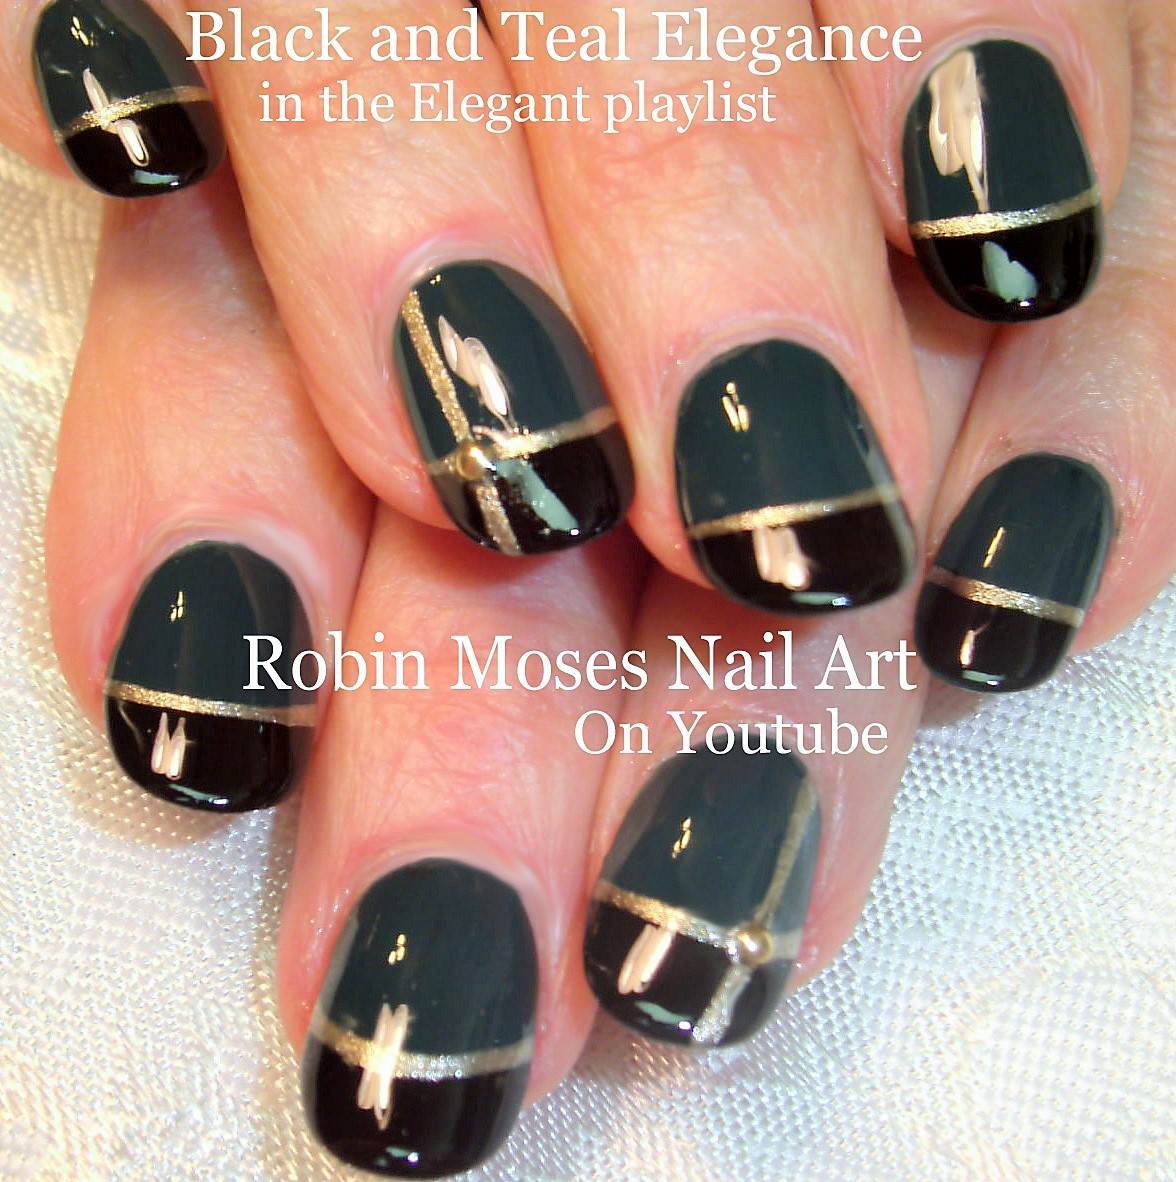 Elegant Nail Art Playlist | Easy Formal Nail Designs | Nail Tutorials for  Wedding Nail Art, Prom Nails and Ideas for beginners to advanced Artists! - Nail Art By Robin Moses: Elegant Nail Art Ideas & Tutorial Playlist